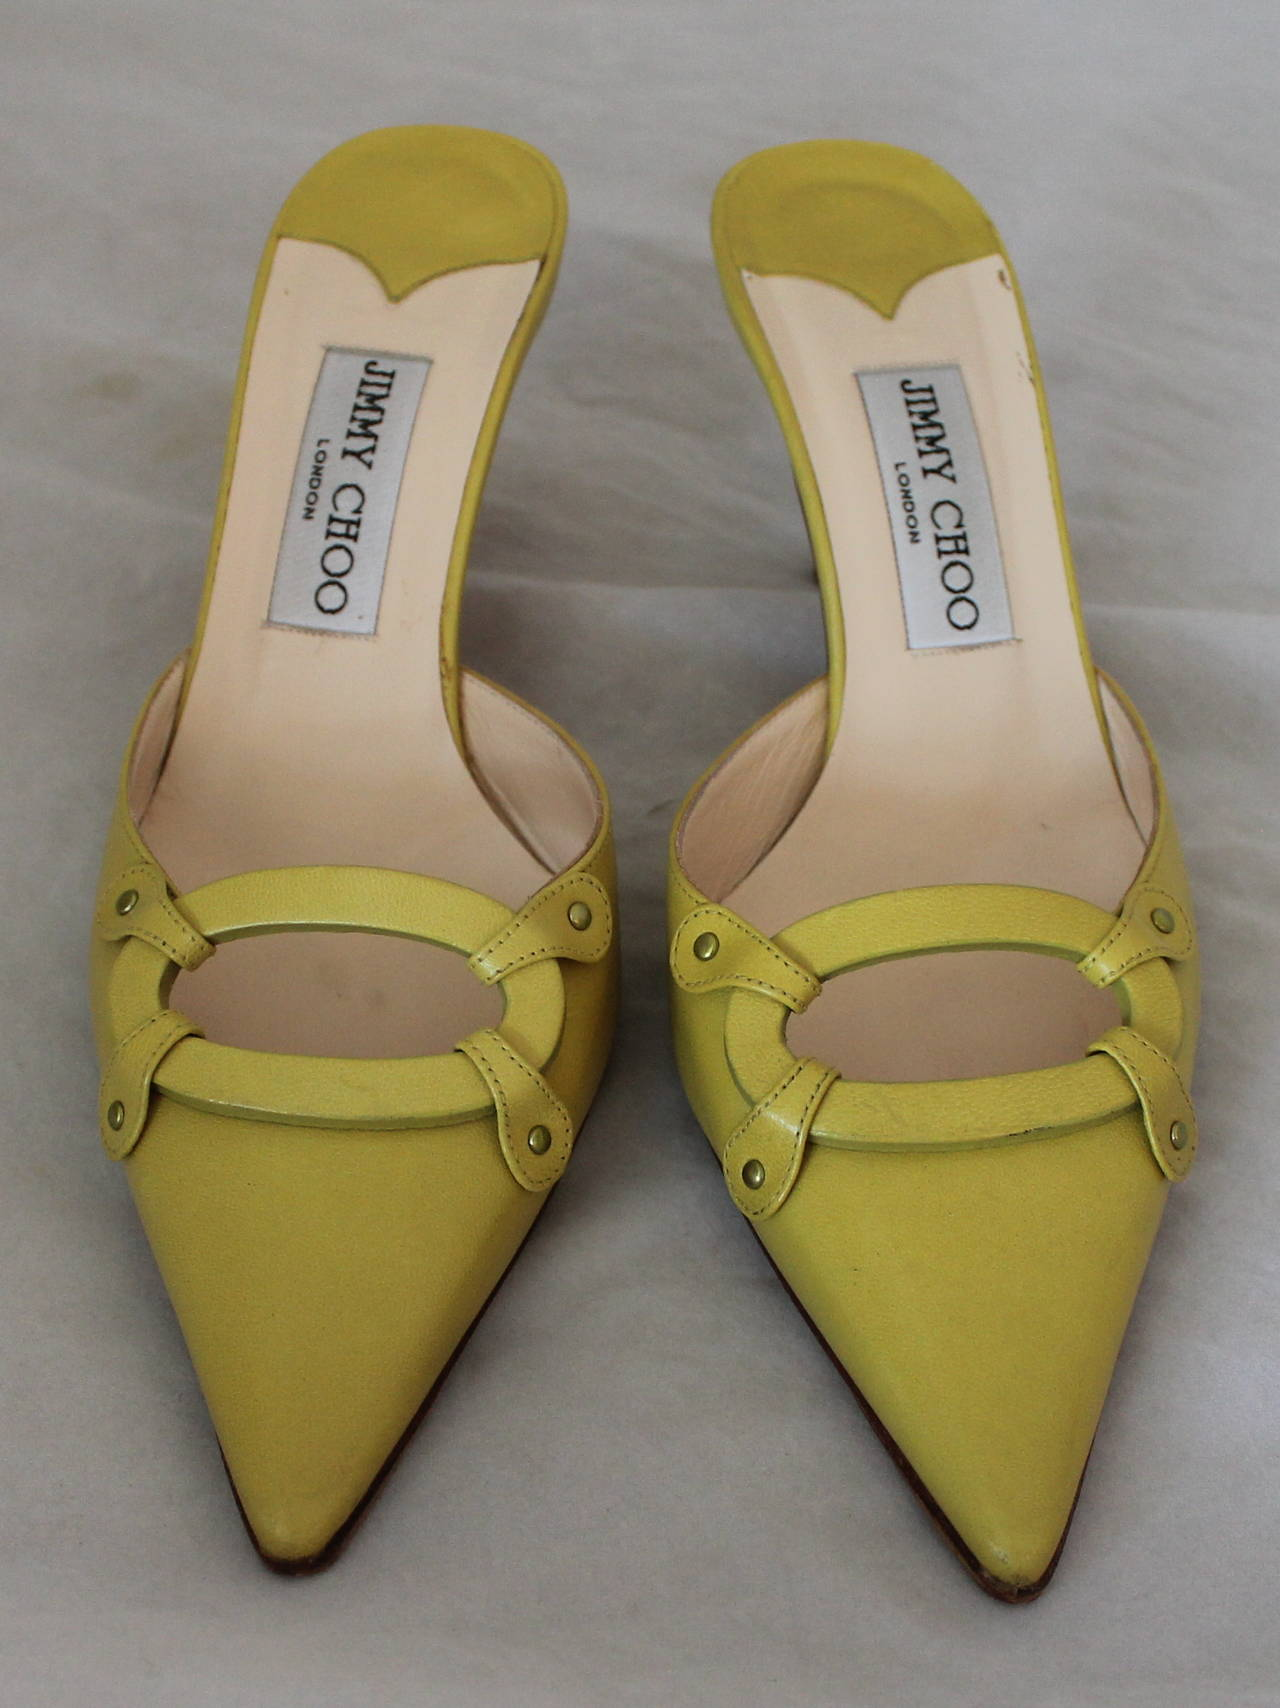 Jimmy Choo Lime Green Leather Slides with Cutout Detail - 37.5. These shoes are in good condition with the only visible wear being on the bottom.